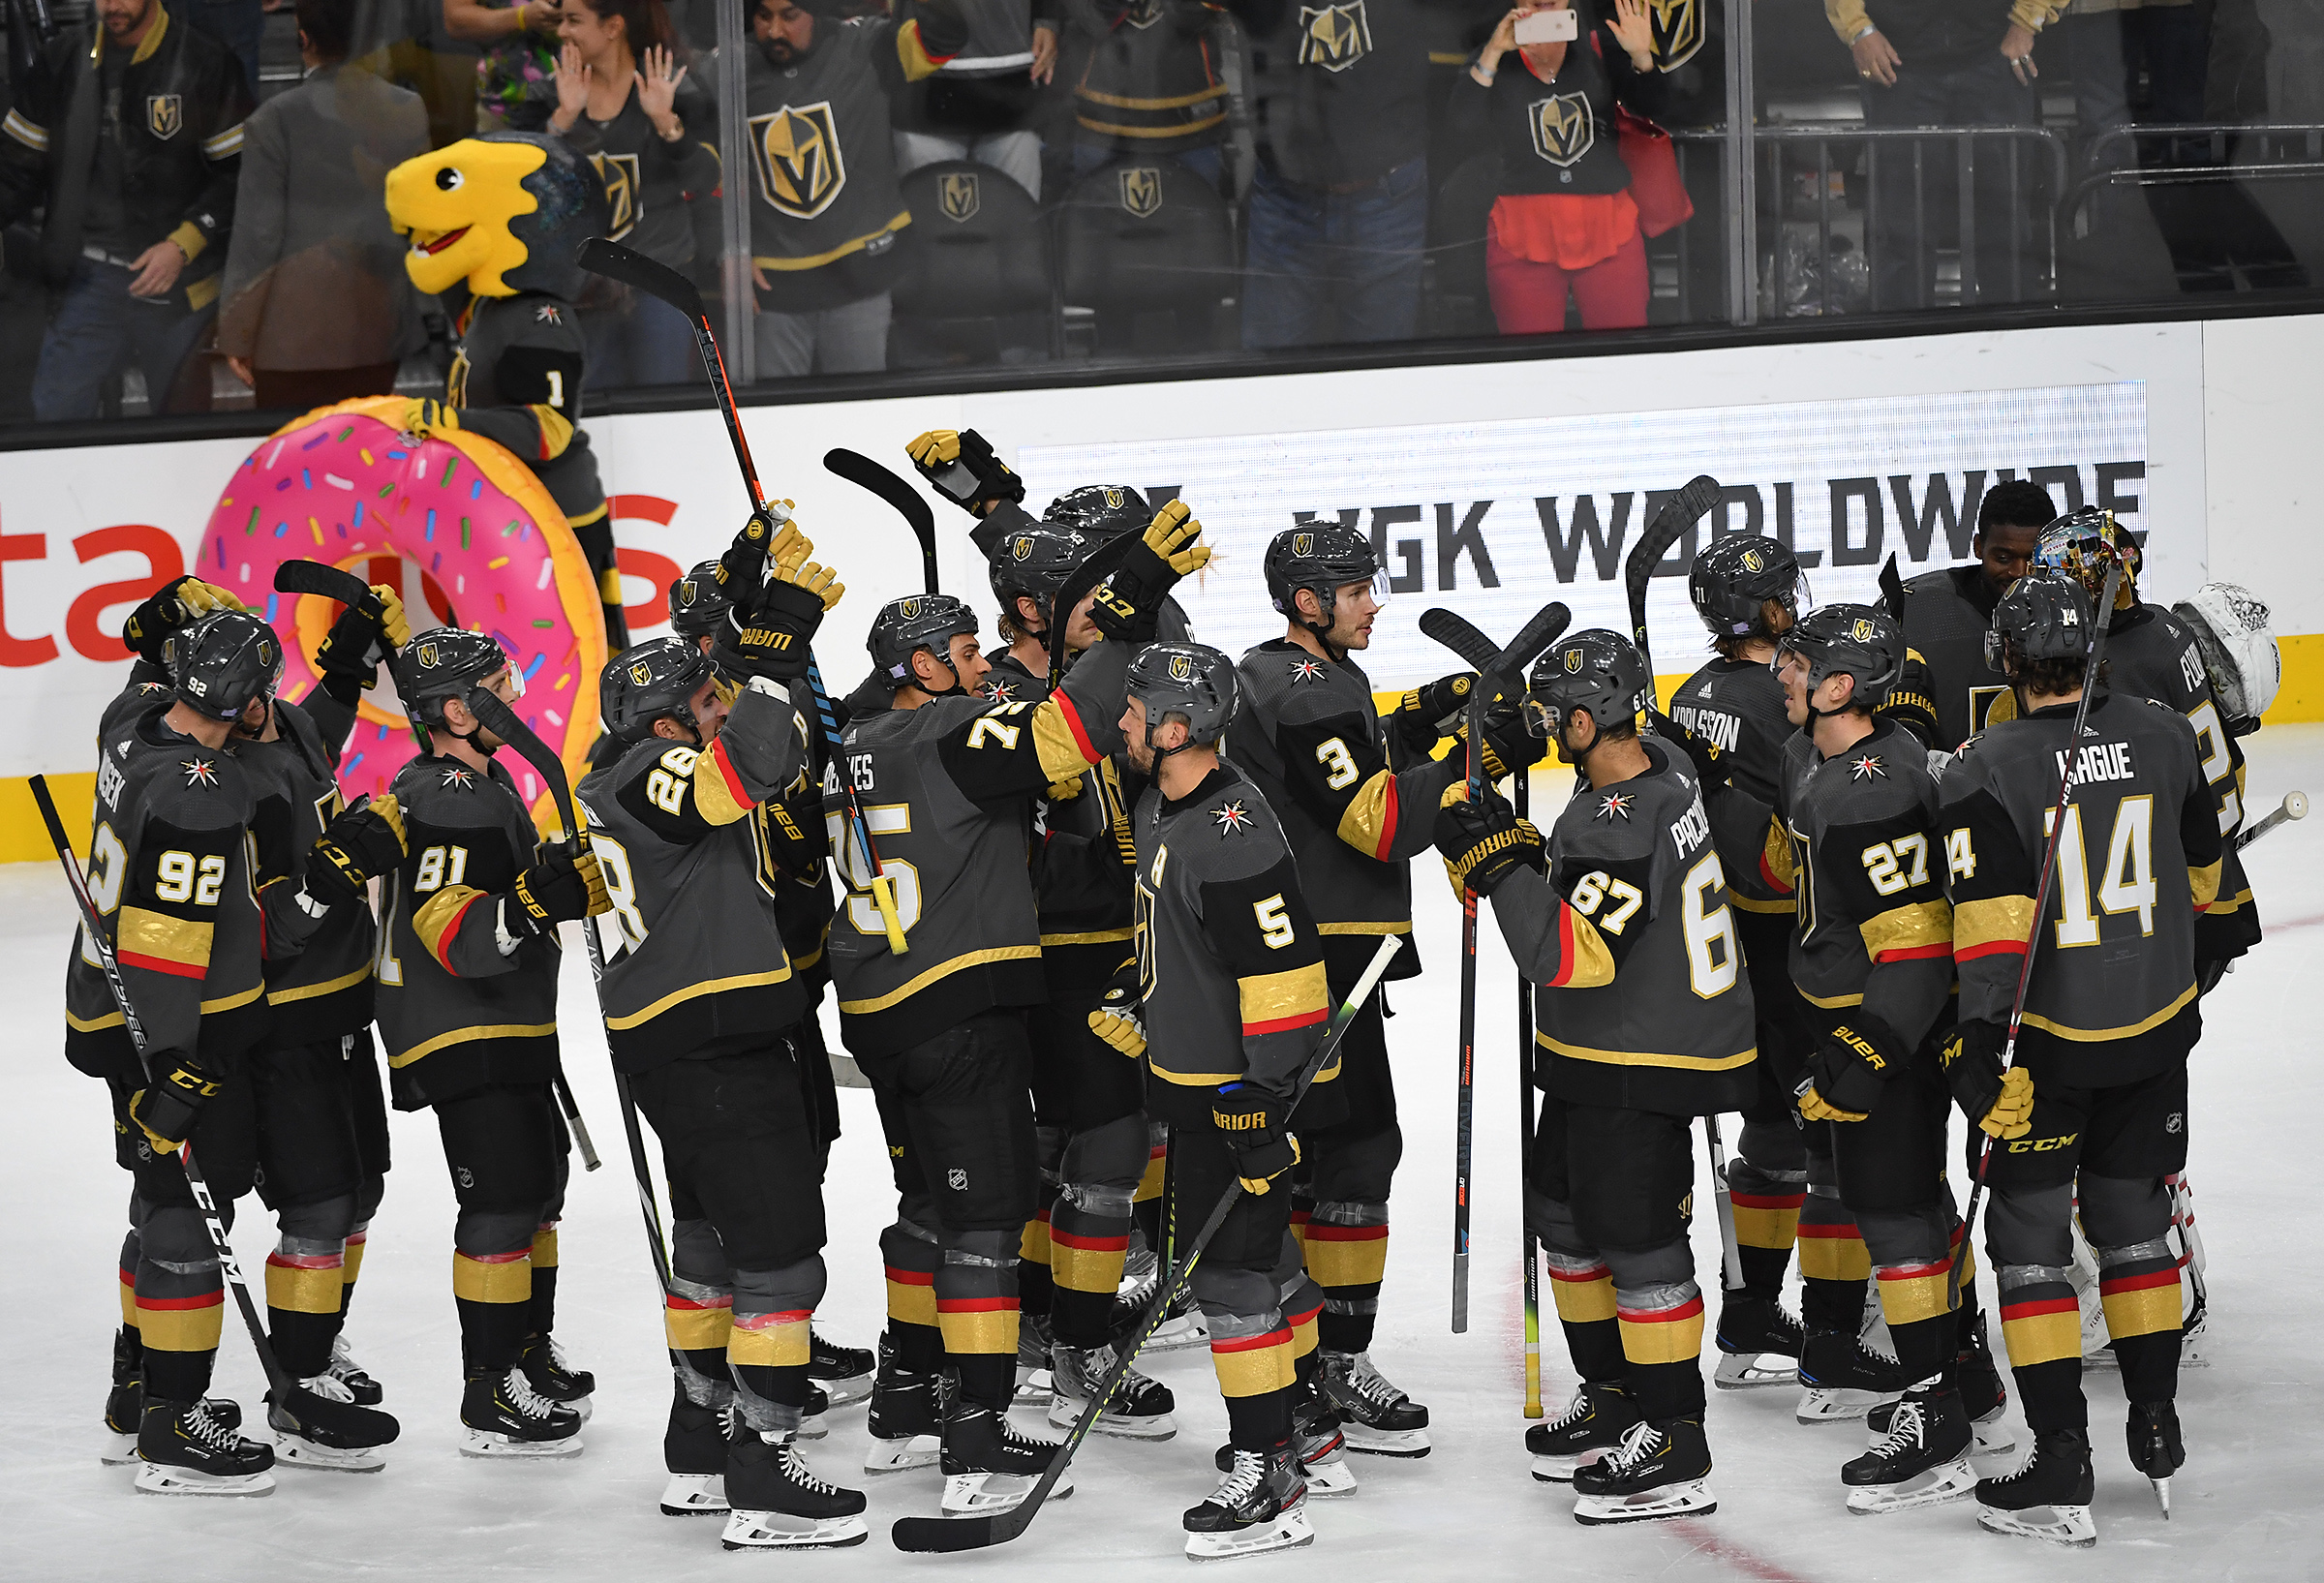 Nov 17, 2019; Las Vegas, NV, USA; Vegas Golden Knights players celebrate after defeating the Calgary Flames 6-0 at T-Mobile Arena.